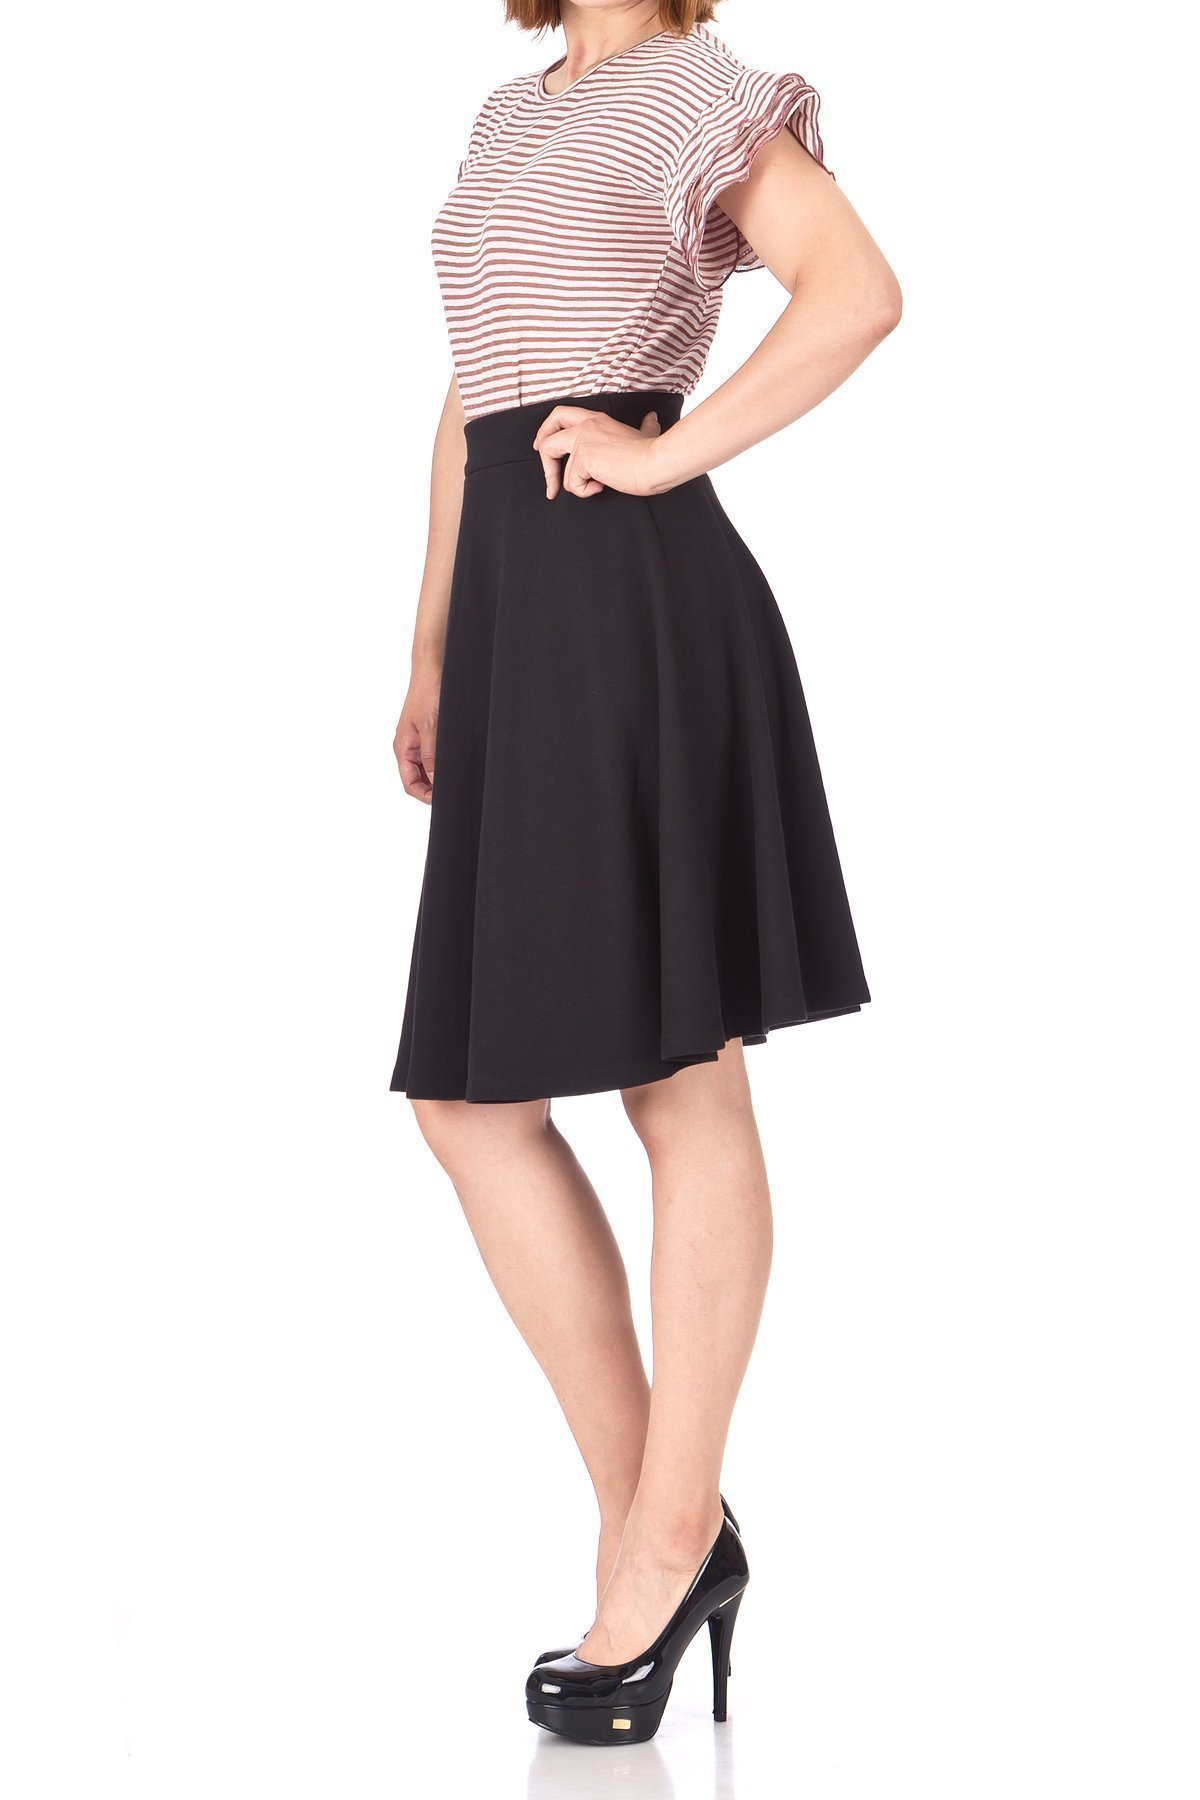 Comfy and Lovely Cotton Blend Versatile Casual Office High Waist A line Full Flared Swing Circle Skater Knee Length Skirt Black 03